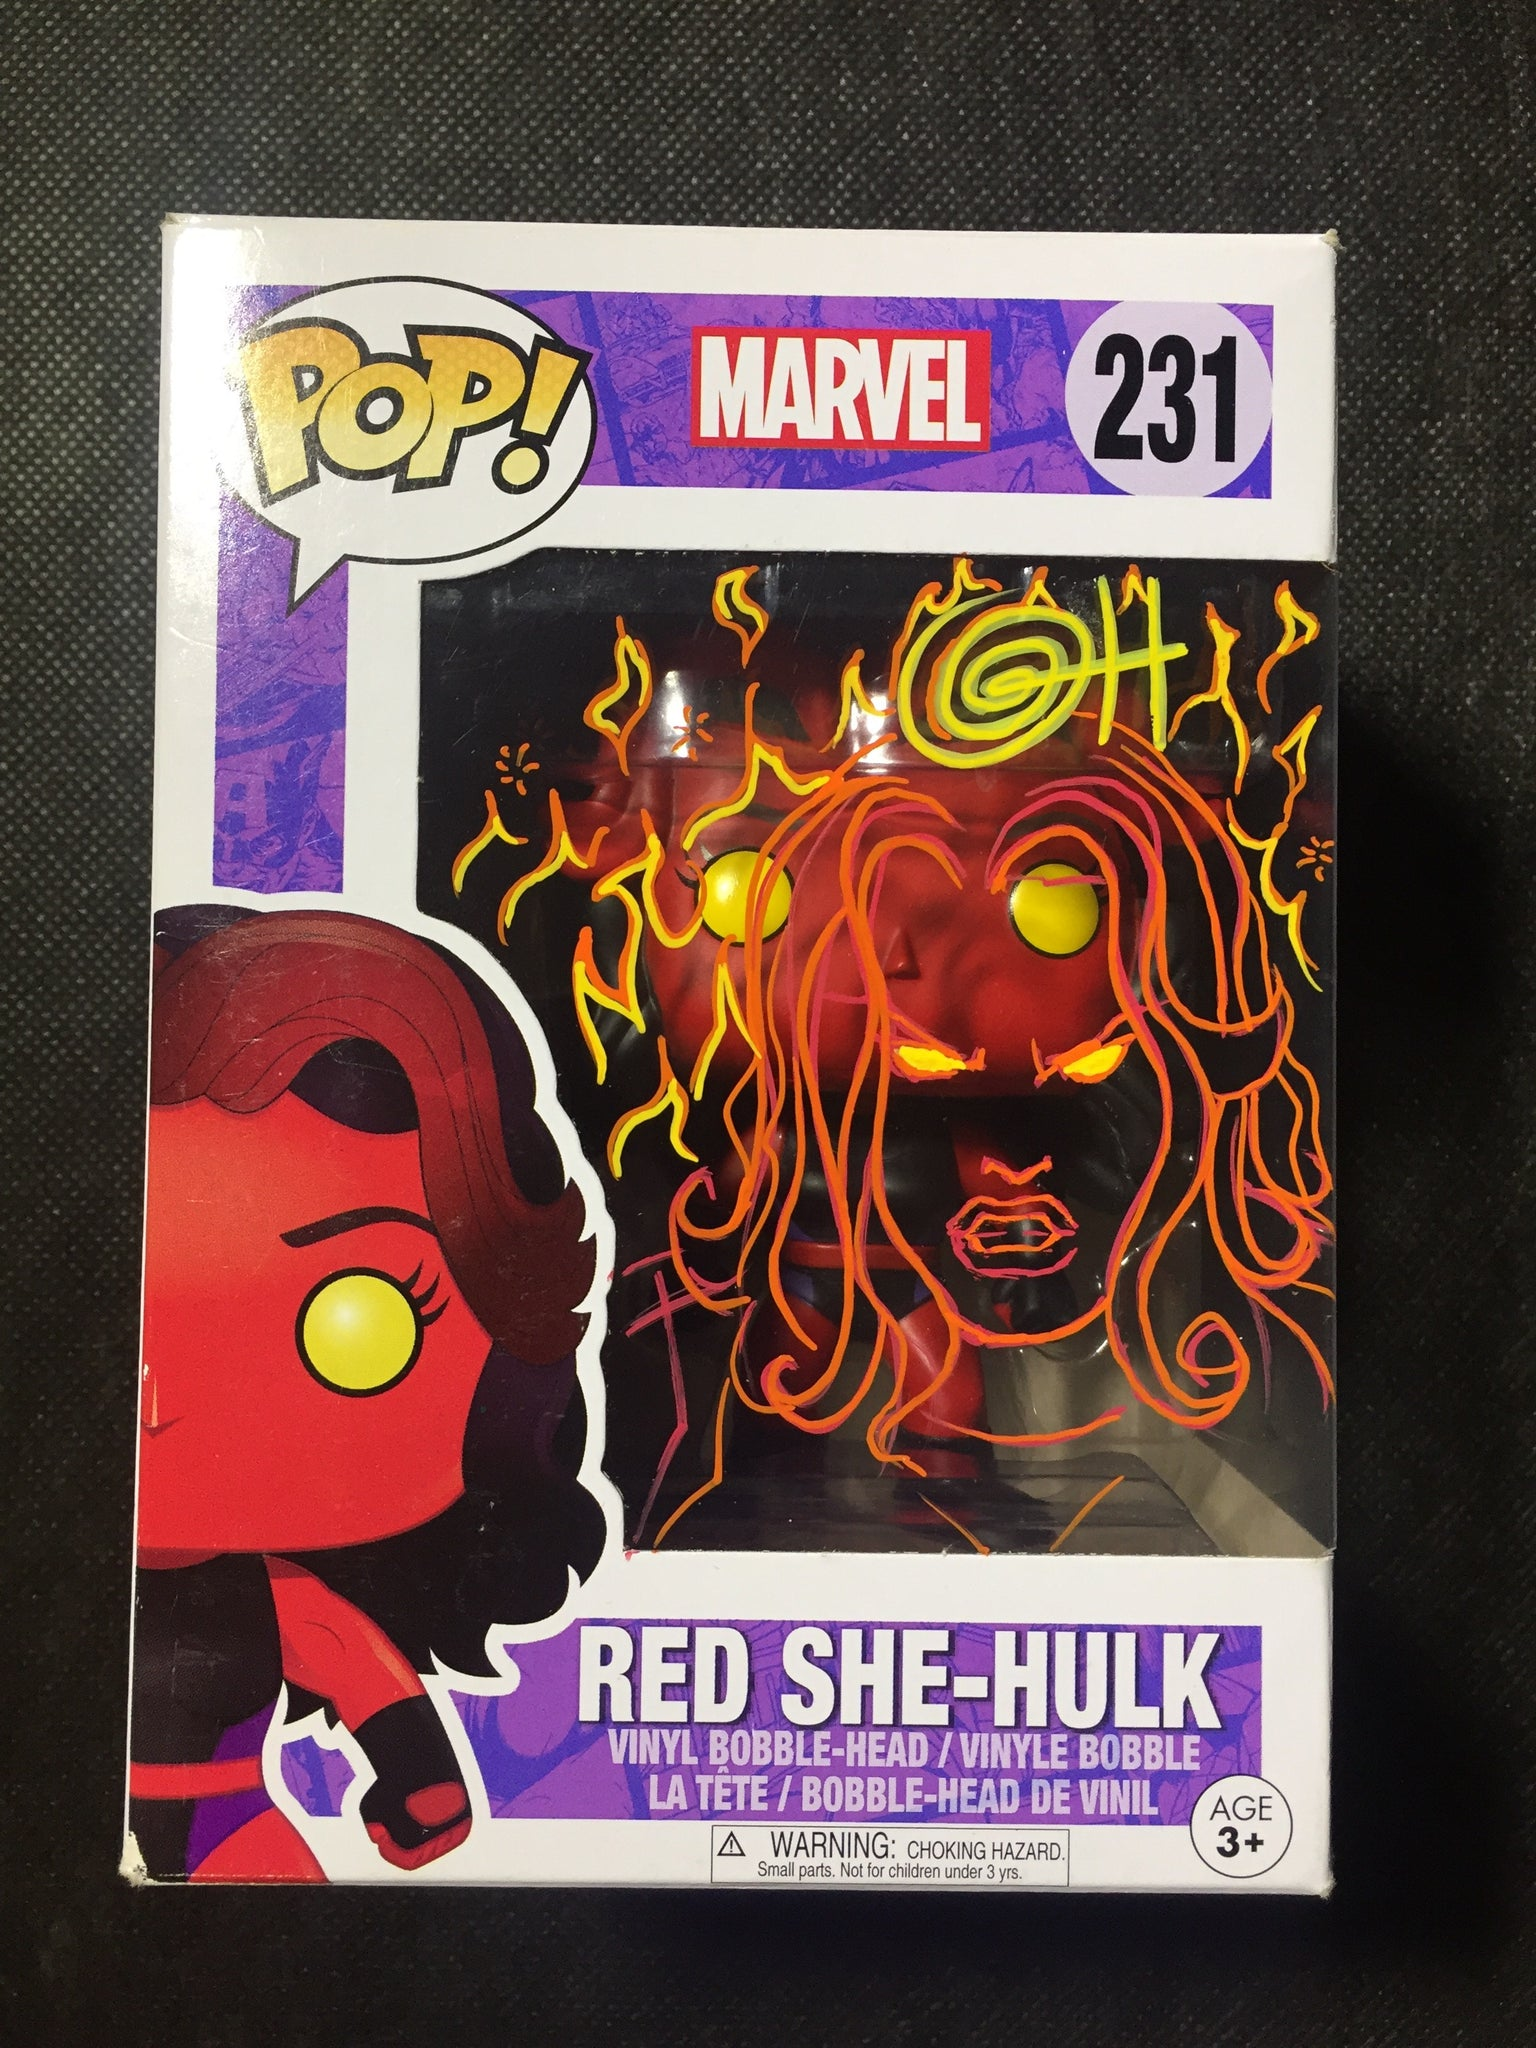 Red She-Hulk PoP! Remarked with Red She-Hulk & Flames.